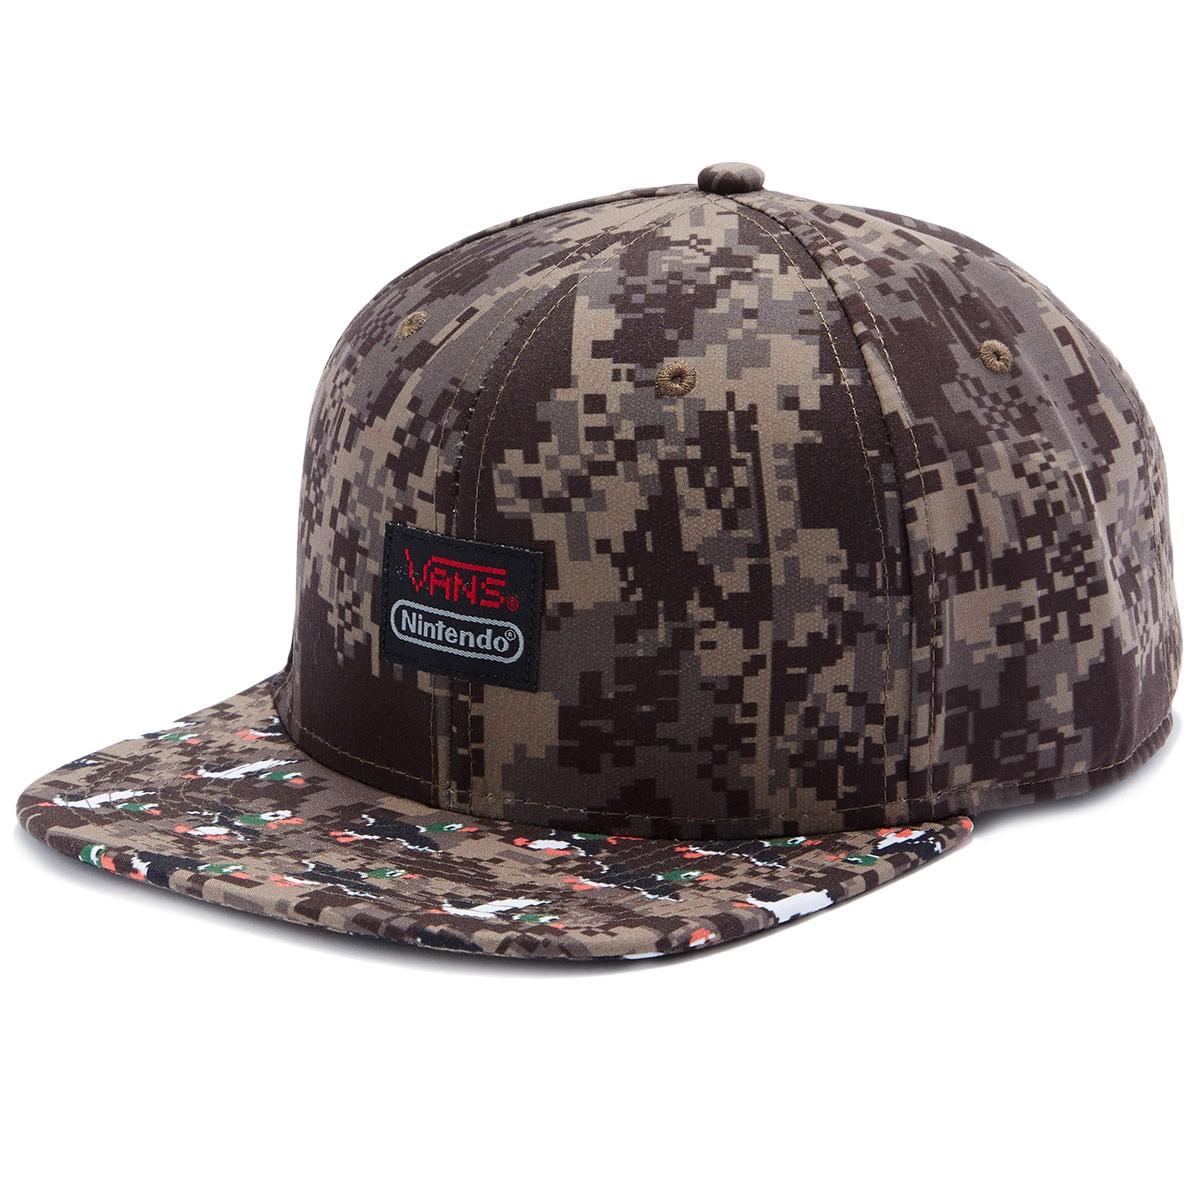 b2024fe6d39 Vans Duck Hunt Snapback Hat - Duck Hunt